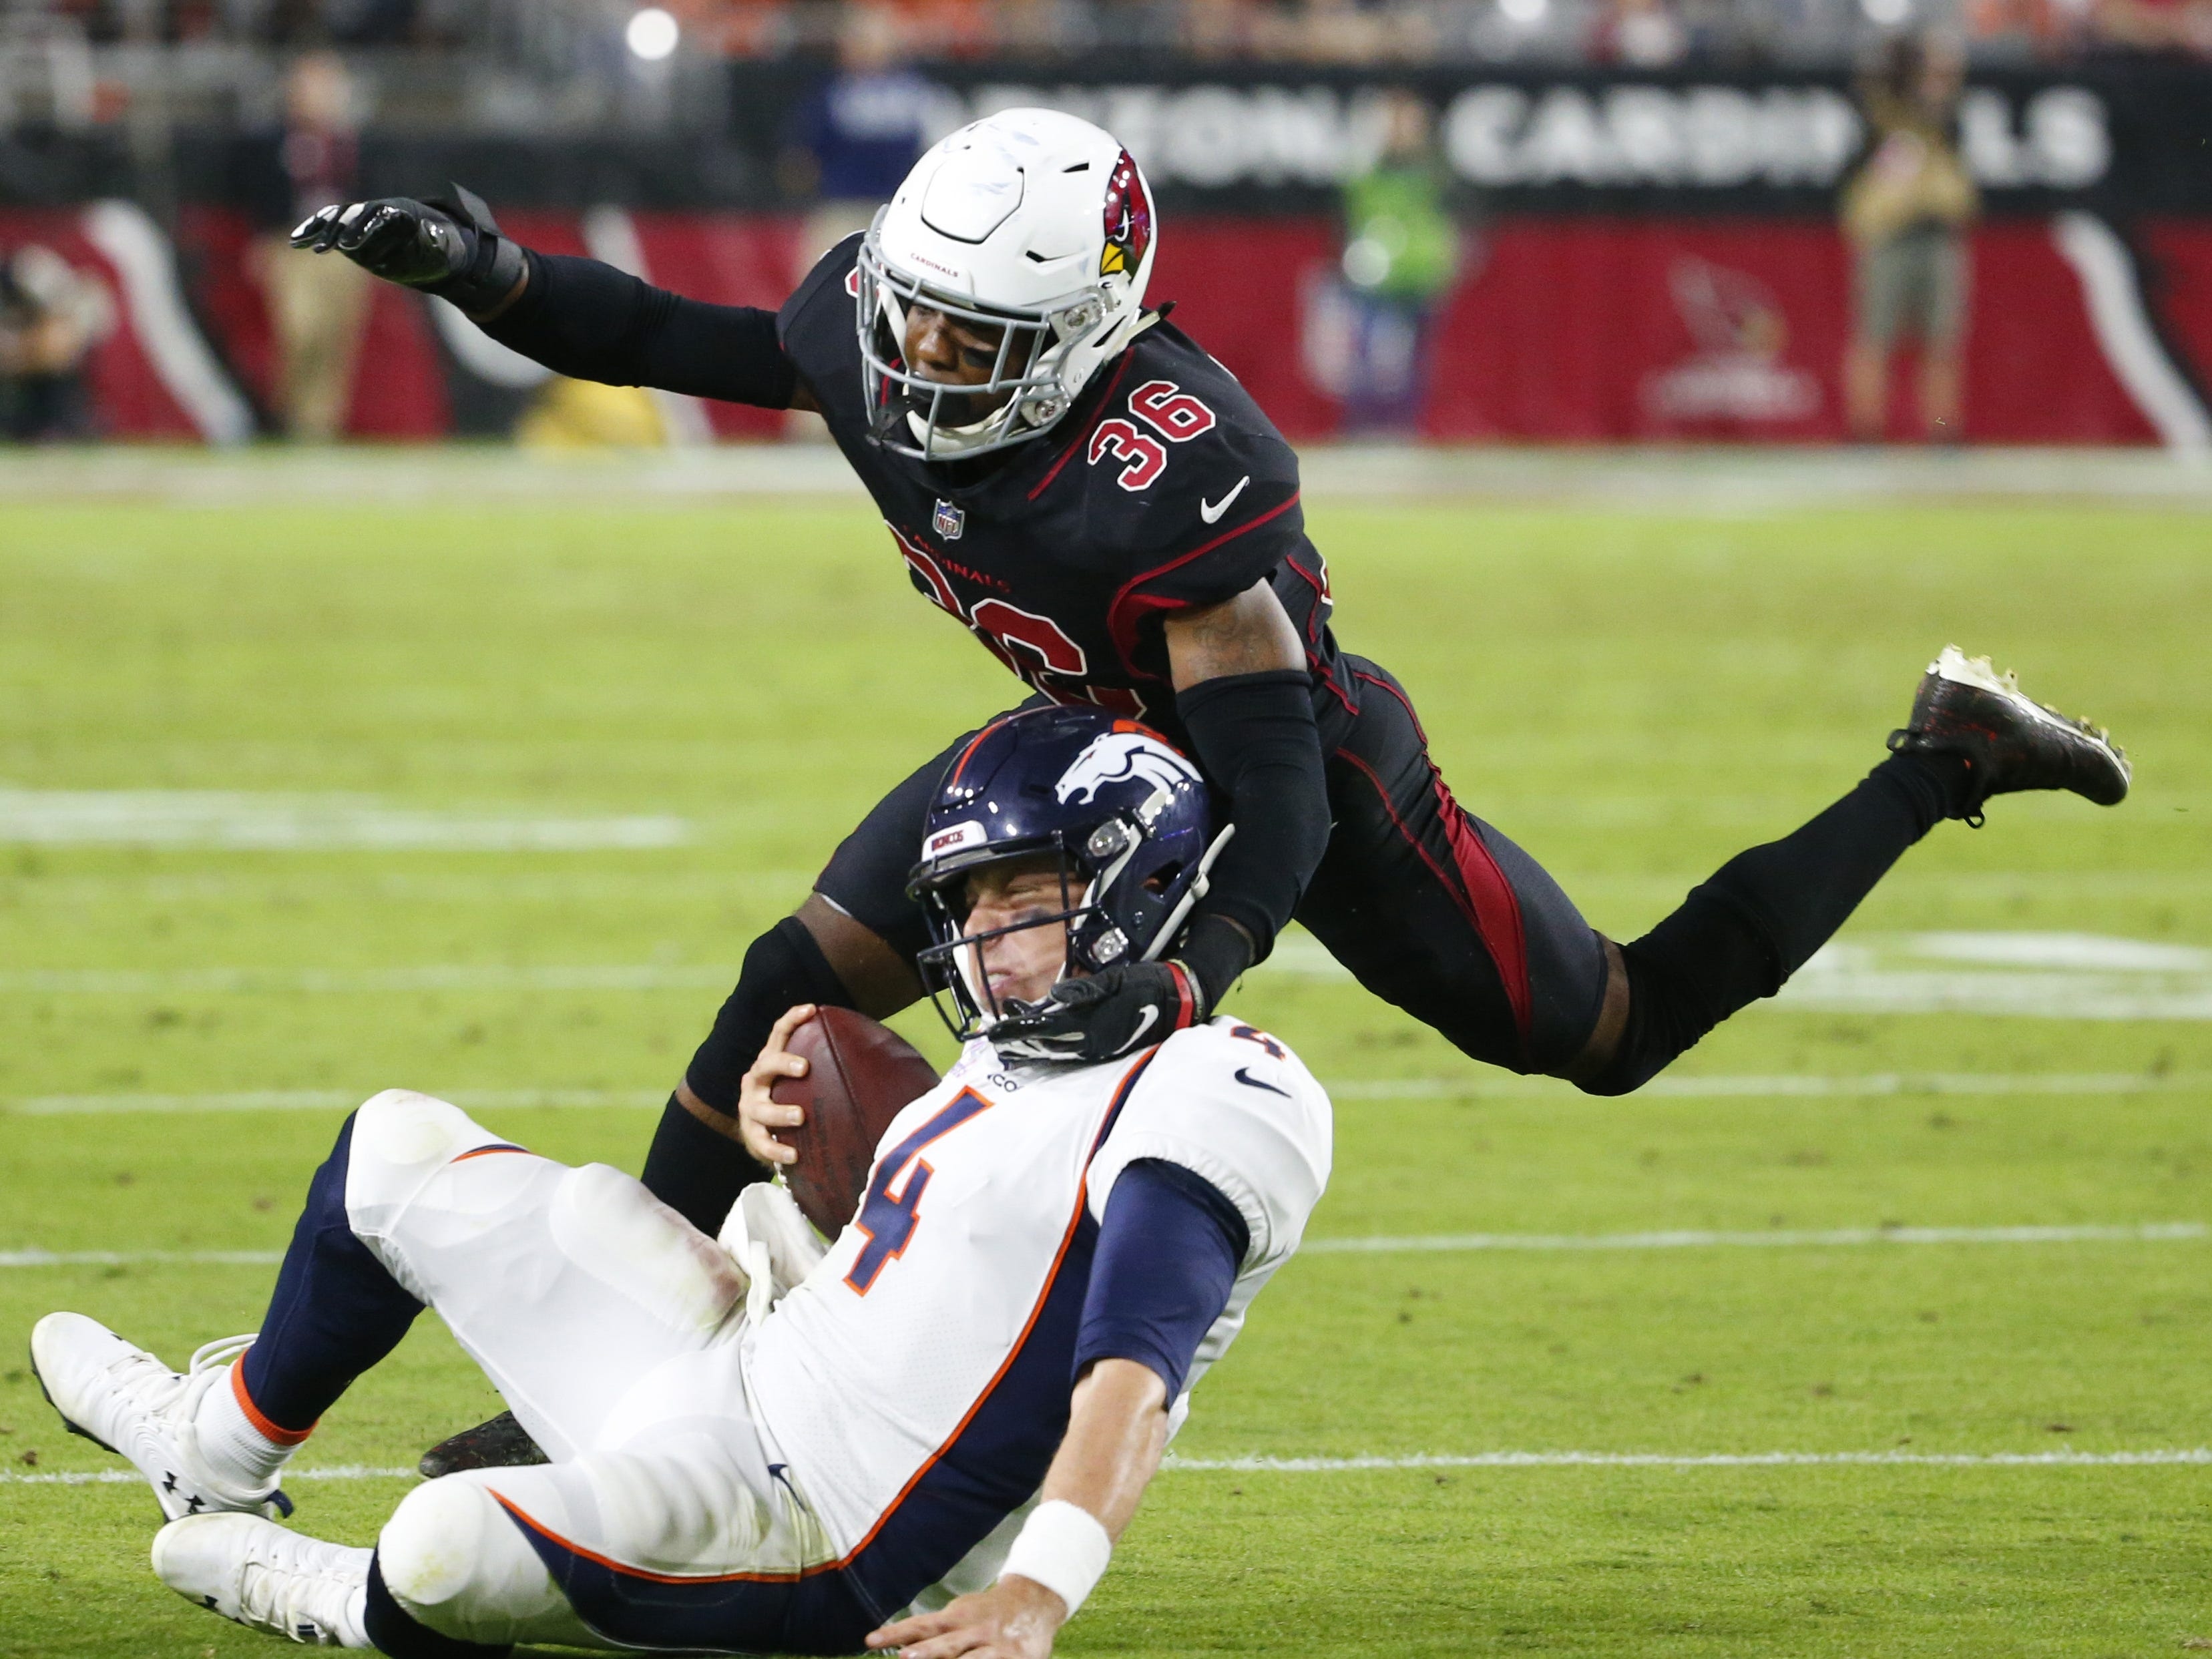 Arizona Cardinals strong safety Budda Baker (36) tackles Denver Broncos quarterback Case Keenum (4) during a football game at State Farm Stadium in Glendale on October 18, 2018.